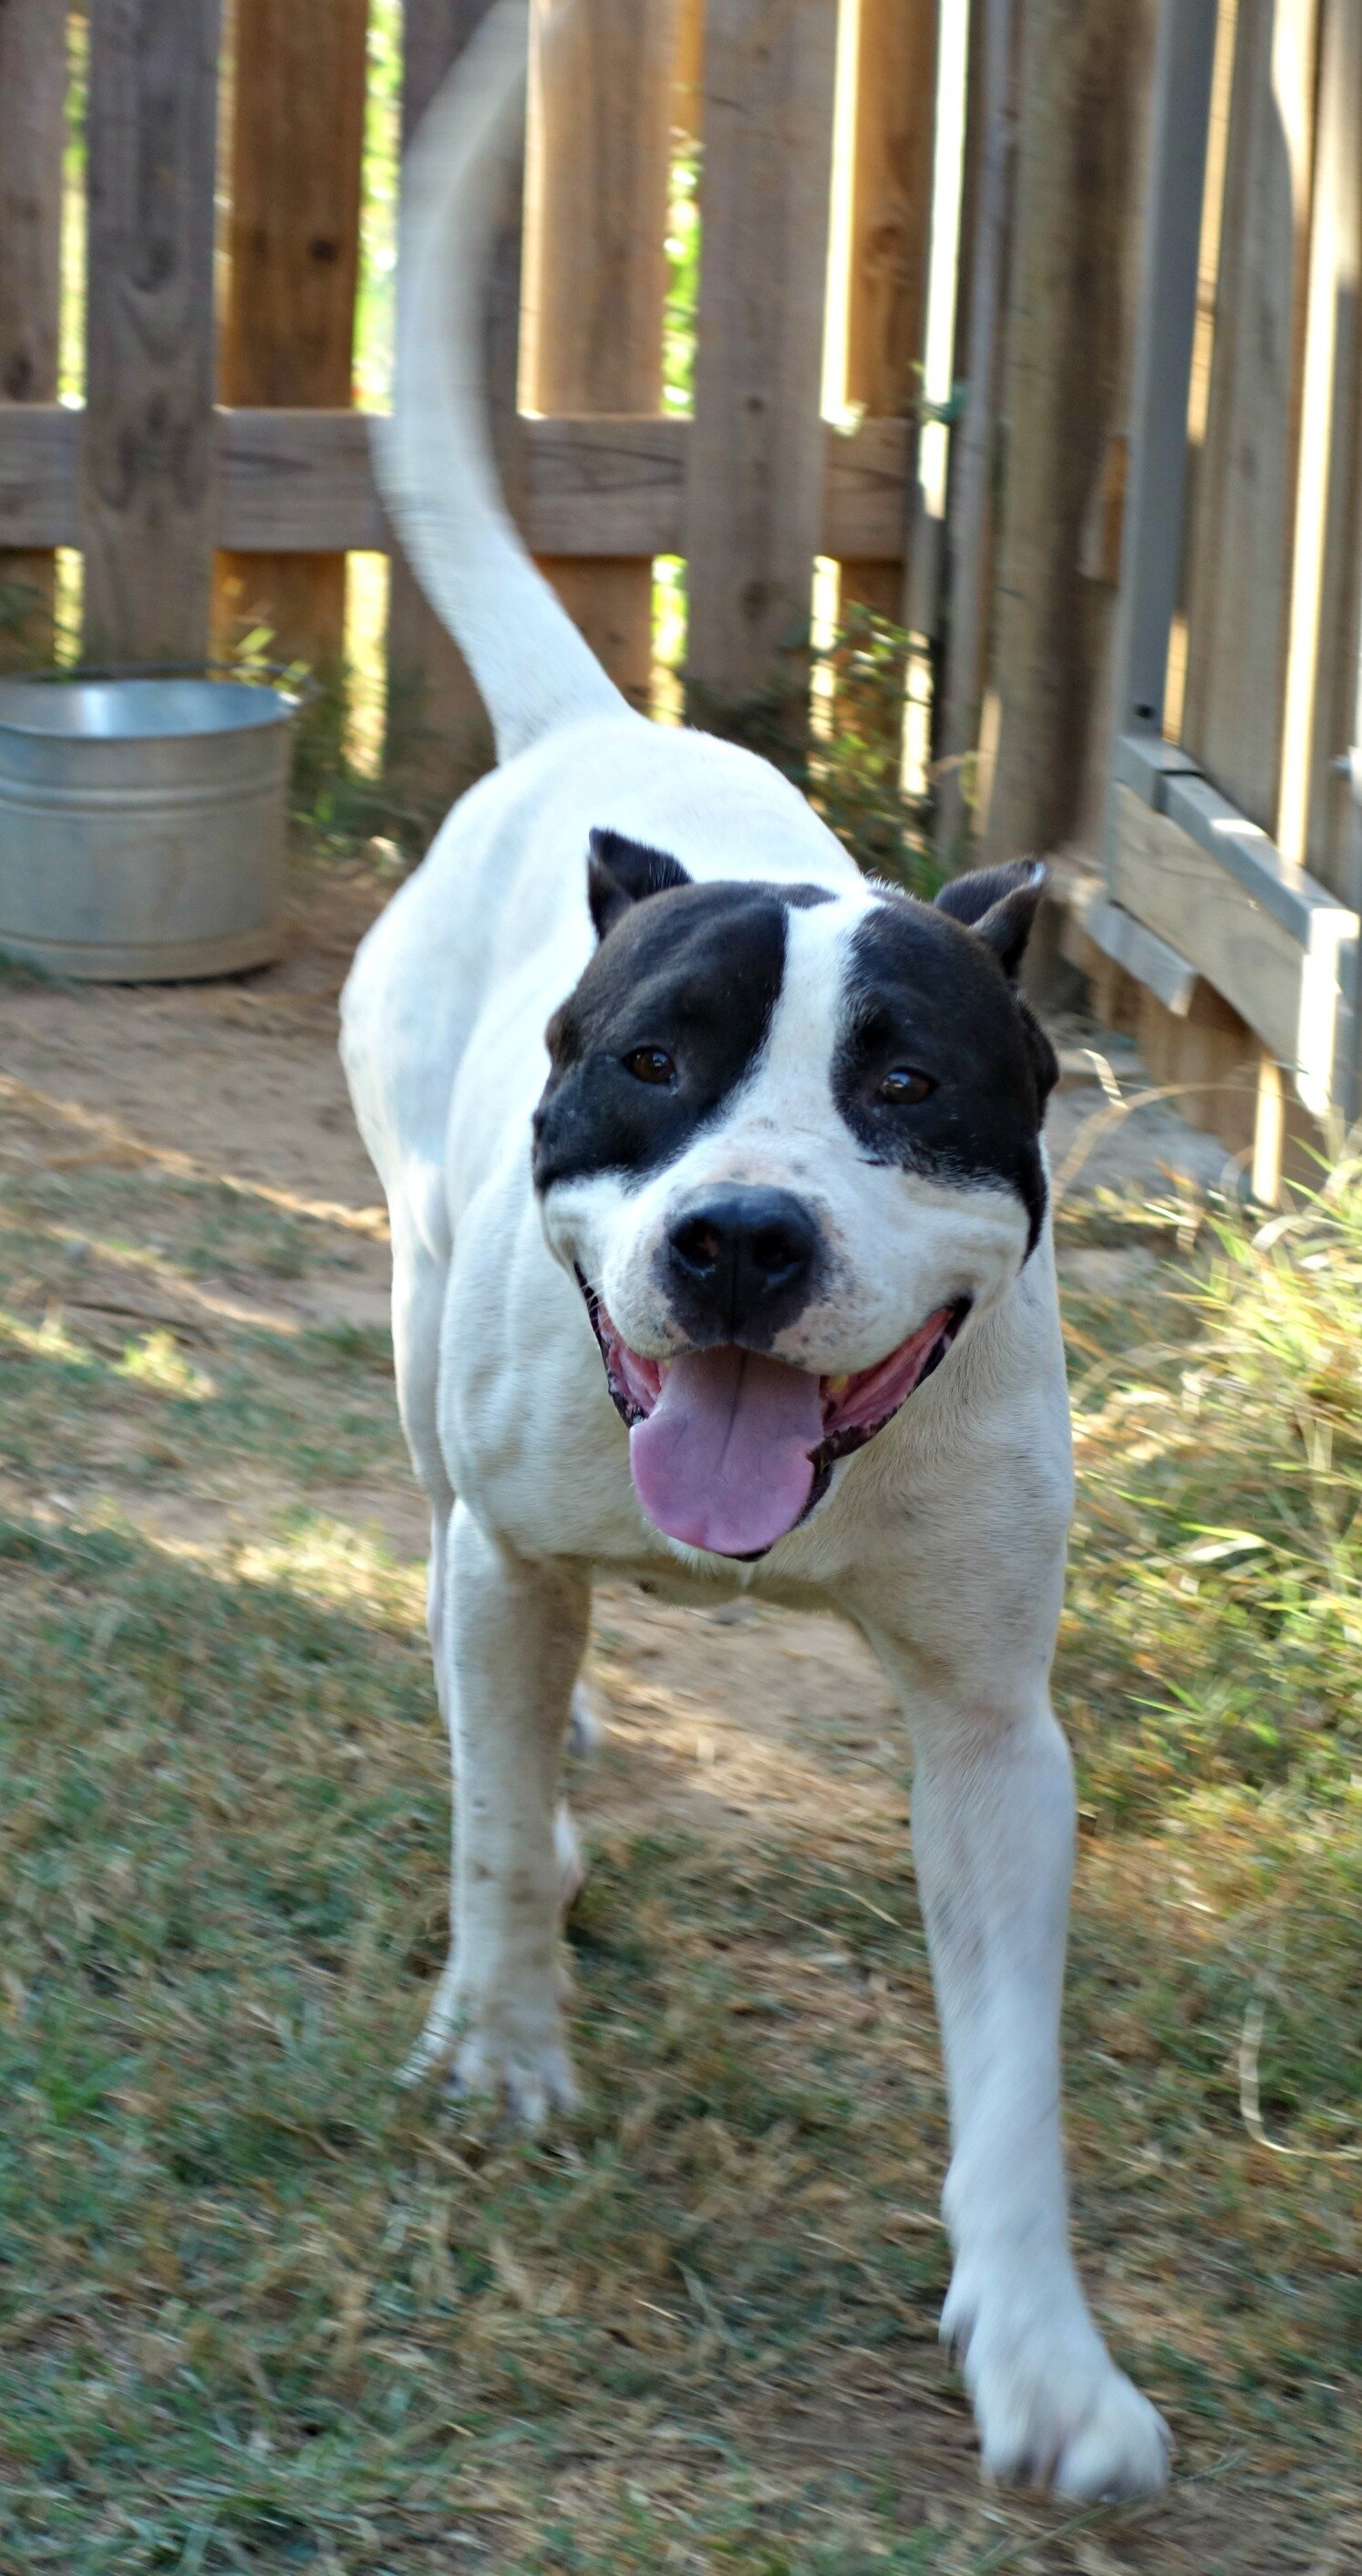 Bruiser is a sweet Corso-Bulldog boy that's looking for love!